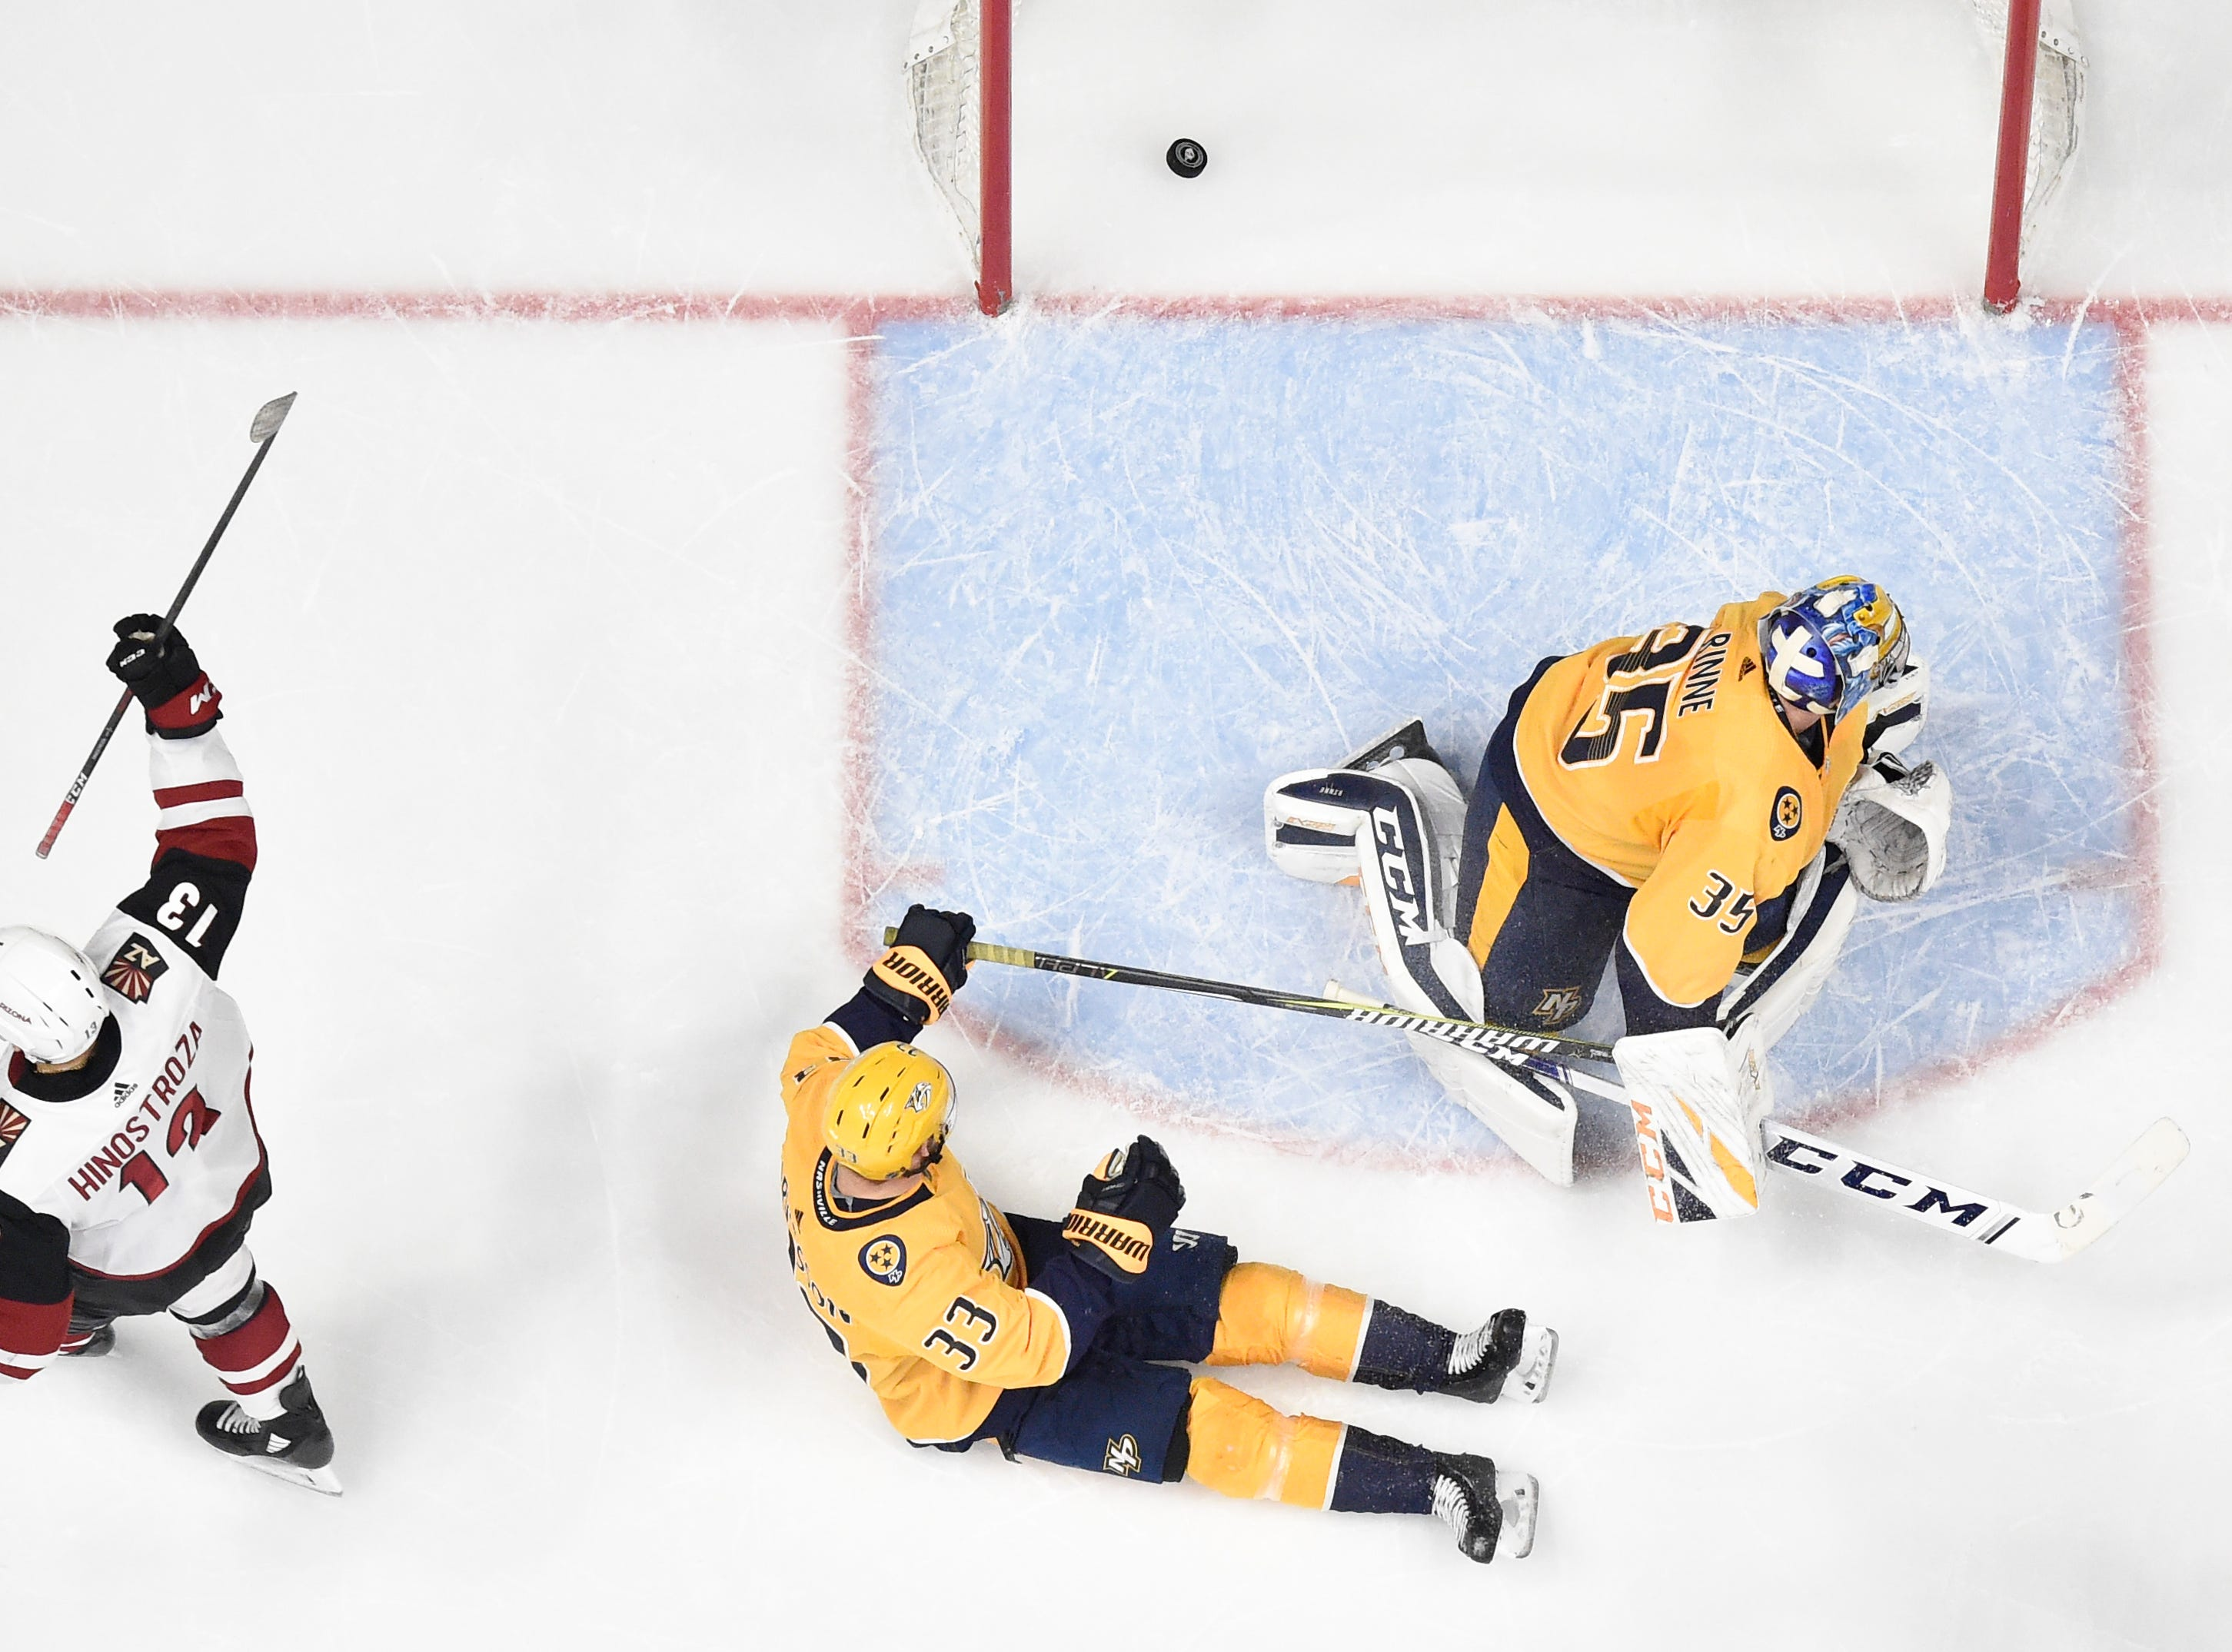 Arizona Coyotes center Vinnie Hinostroza (13) scores past Nashville Predators goaltender Pekka Rinne (35) and right wing Viktor Arvidsson (33) during the first period at Bridgestone Arena in Nashville, Tenn., Tuesday, Feb. 5, 2019.